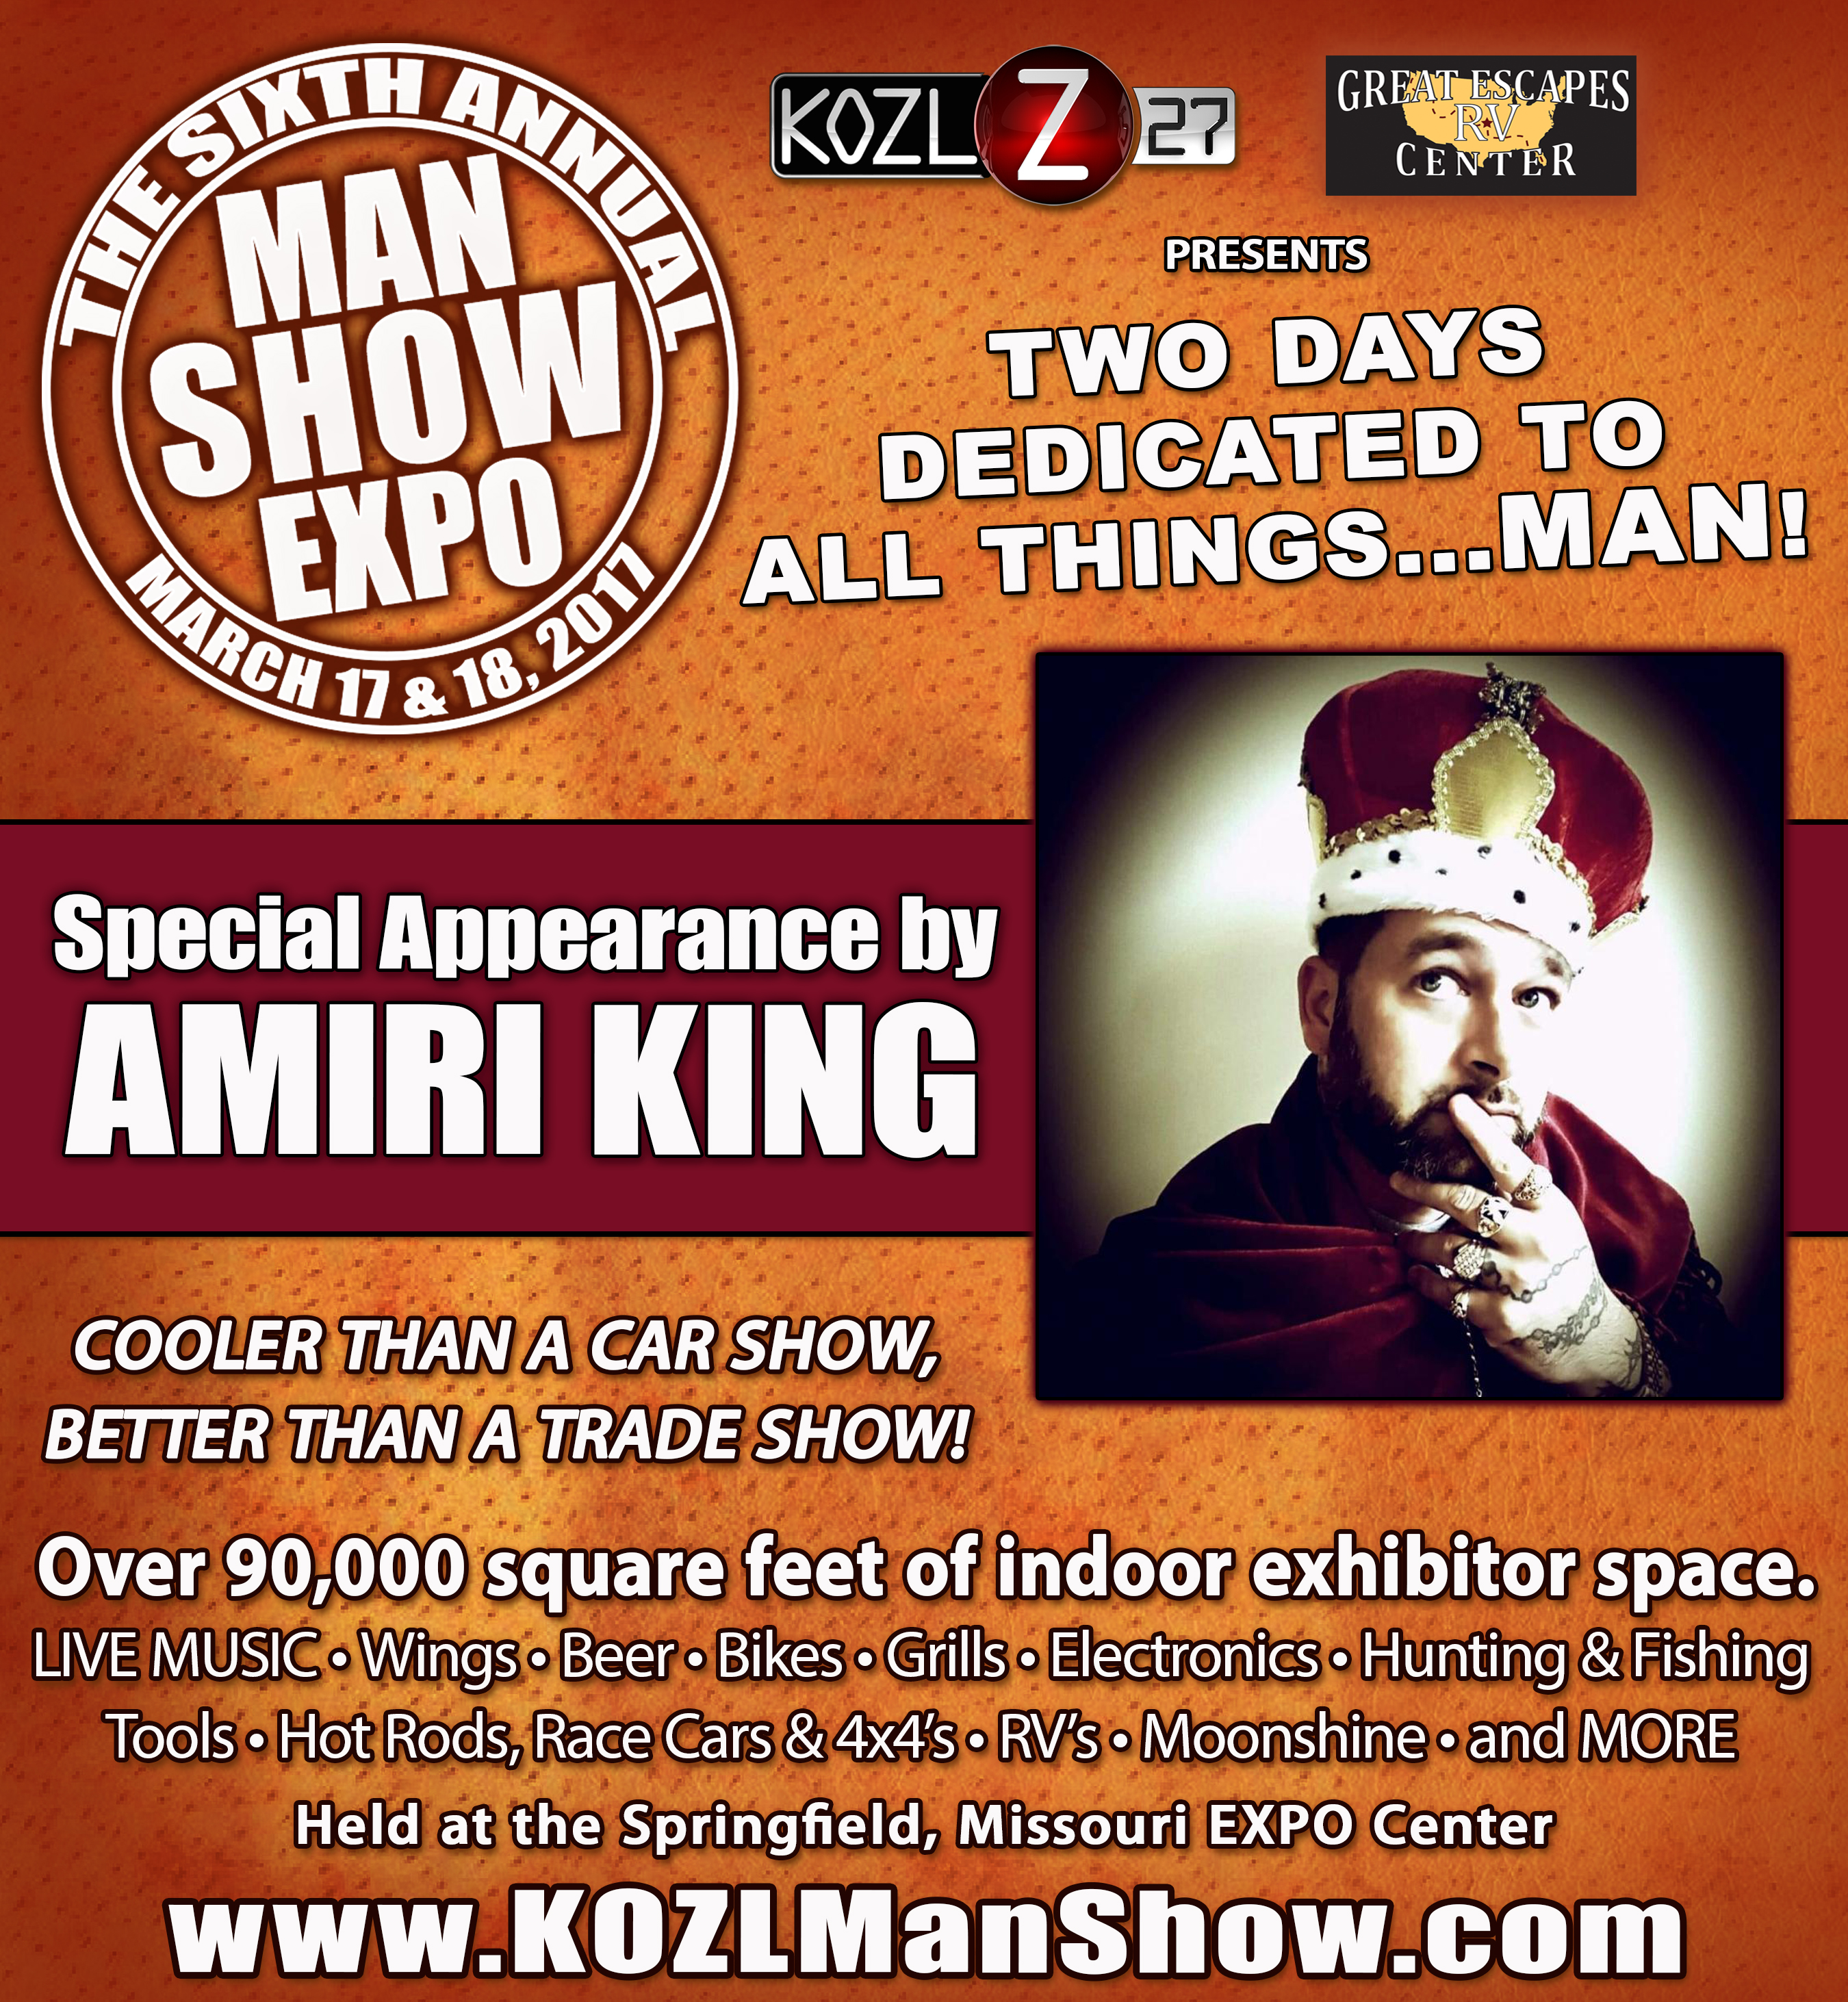 Man Show Expo AMIRI KING